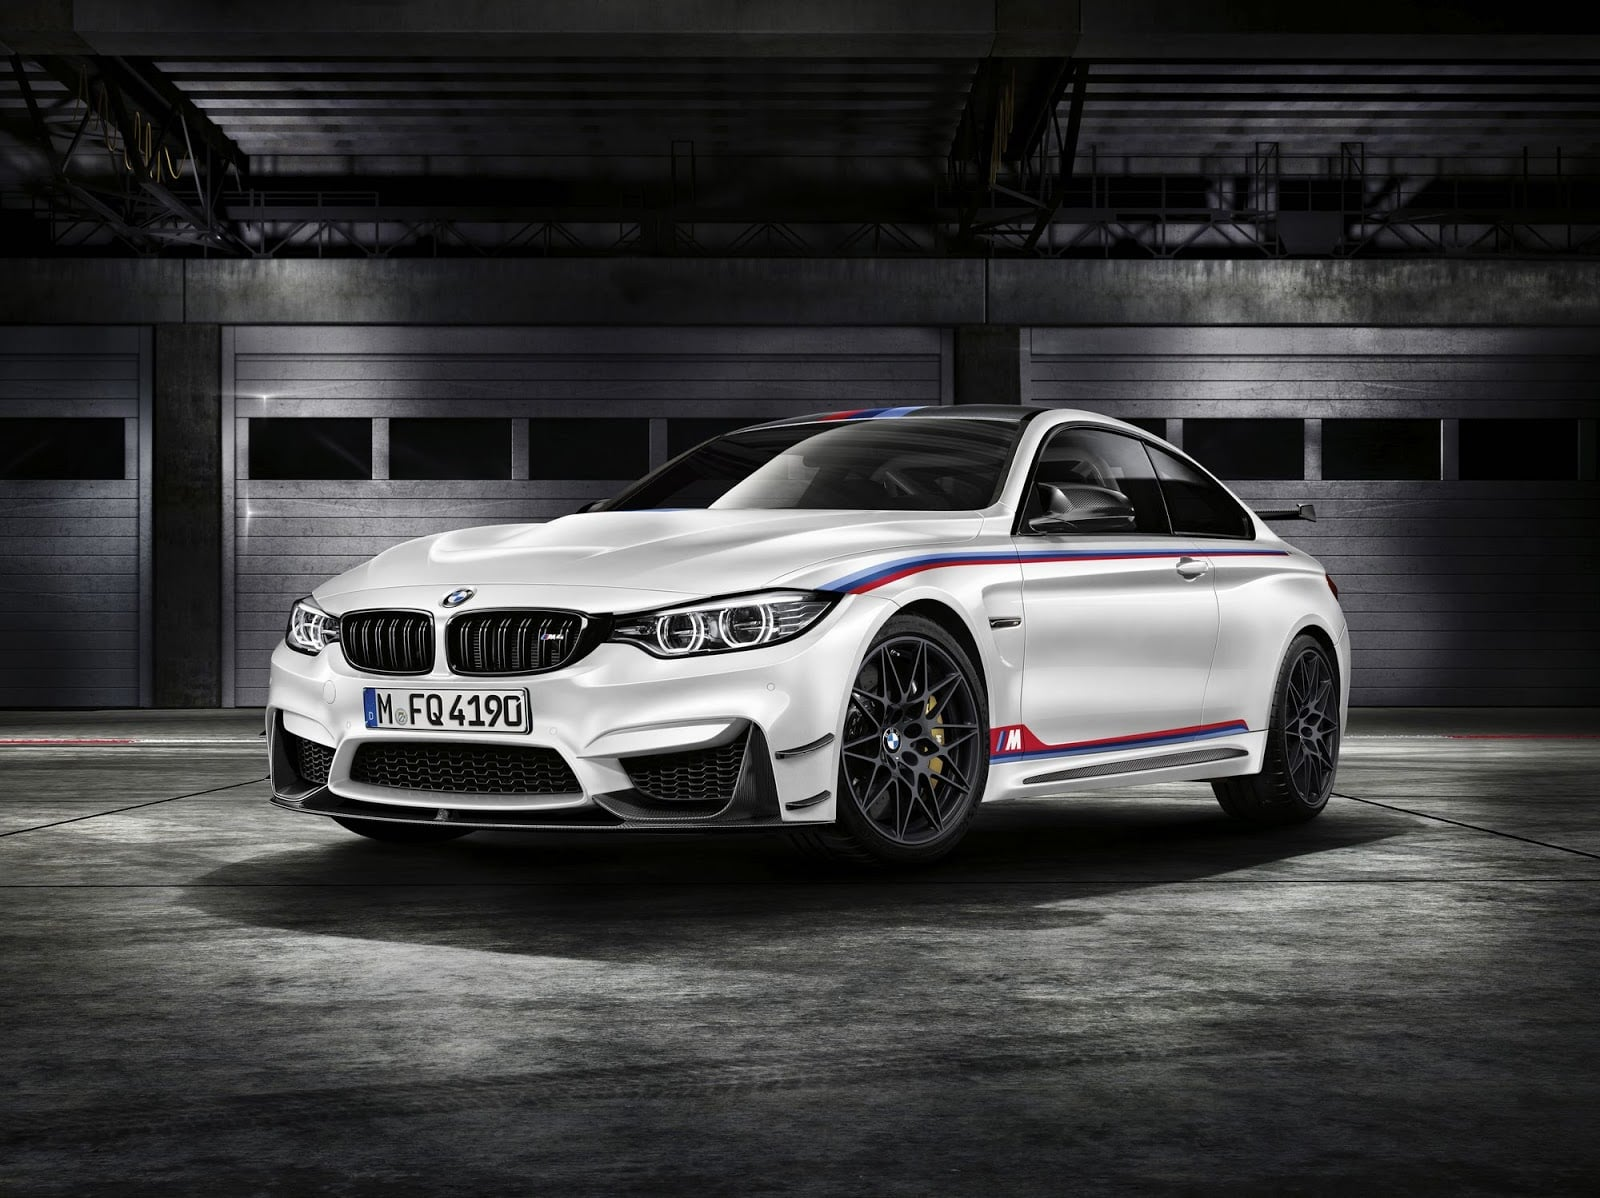 Fotogalerie: BMW M4 DTM Champion Edition